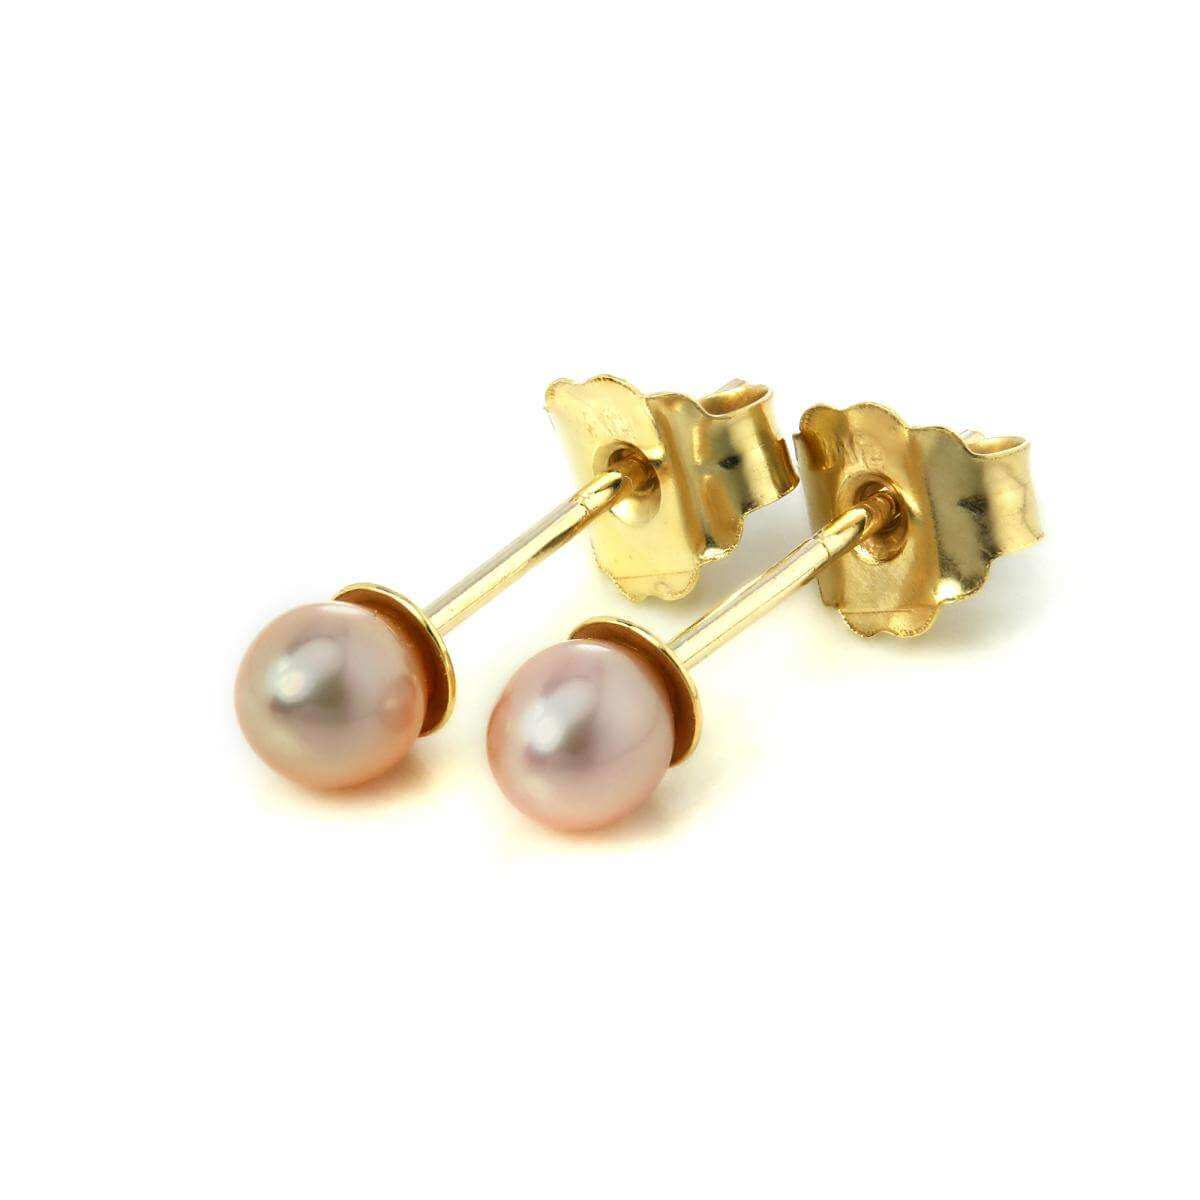 9ct Gold Small 3mm Freshwater Pearl Stud Earrings Violet